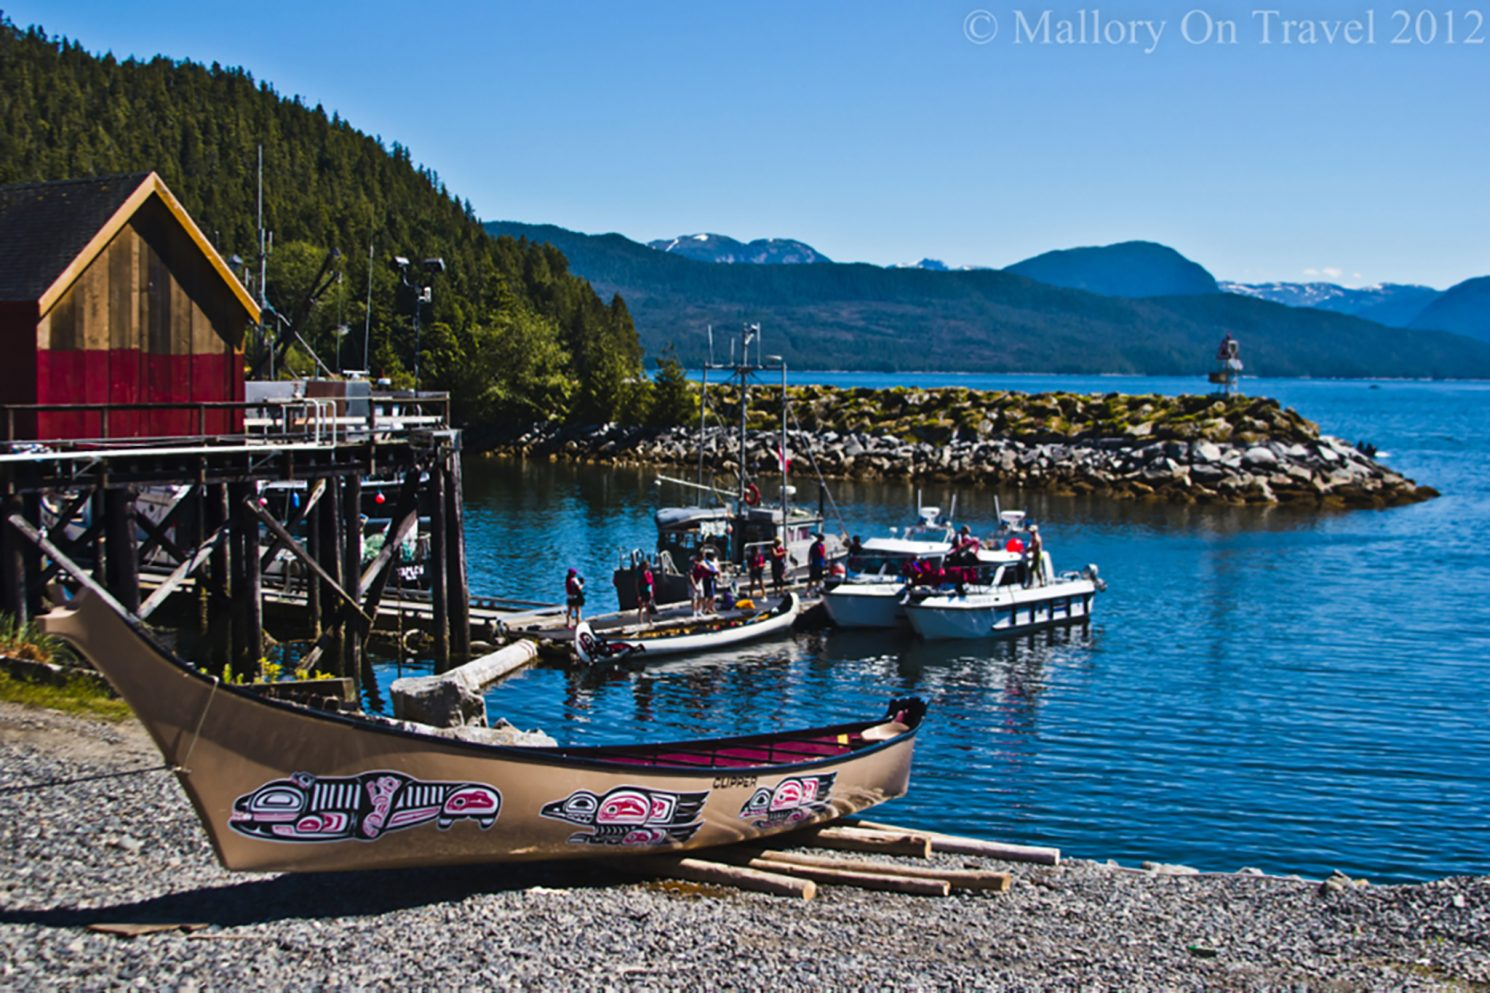 Best of Canada; The First Nation village of Hartley Bay, home of the Gitga' at people in the Great Bear Rainforest on the British Columbian coast of Canada on Mallory on Travel, adventure, adventure travel, photography Iain Mallory-300-23 hartley_bay.jpg